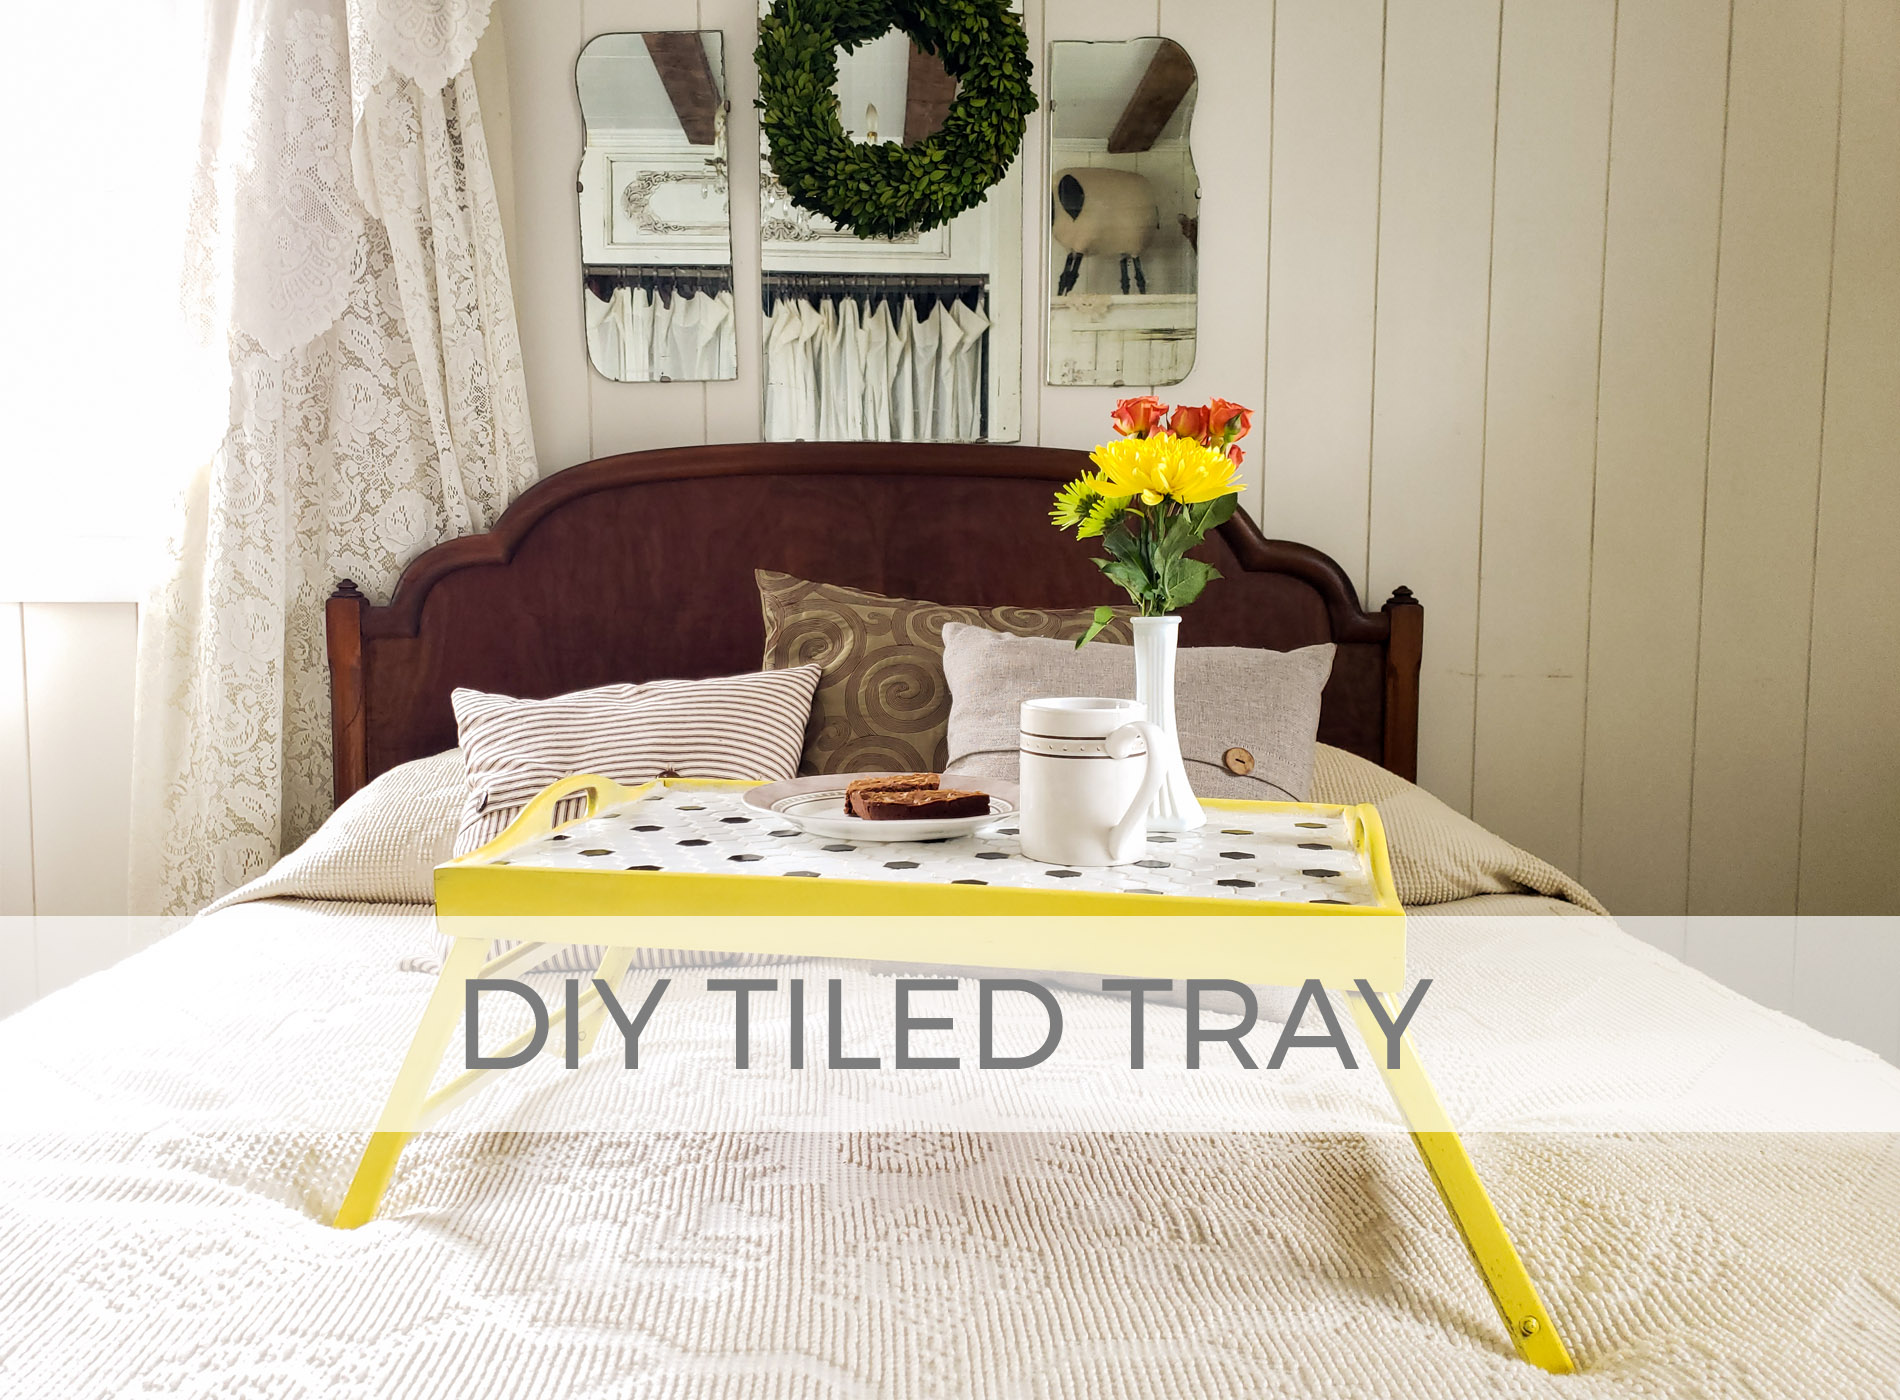 DIY Tiled Tray Video Tutorial by Larissa of Prodigal Pieces | prodigalpieces.com #prodigalpieces